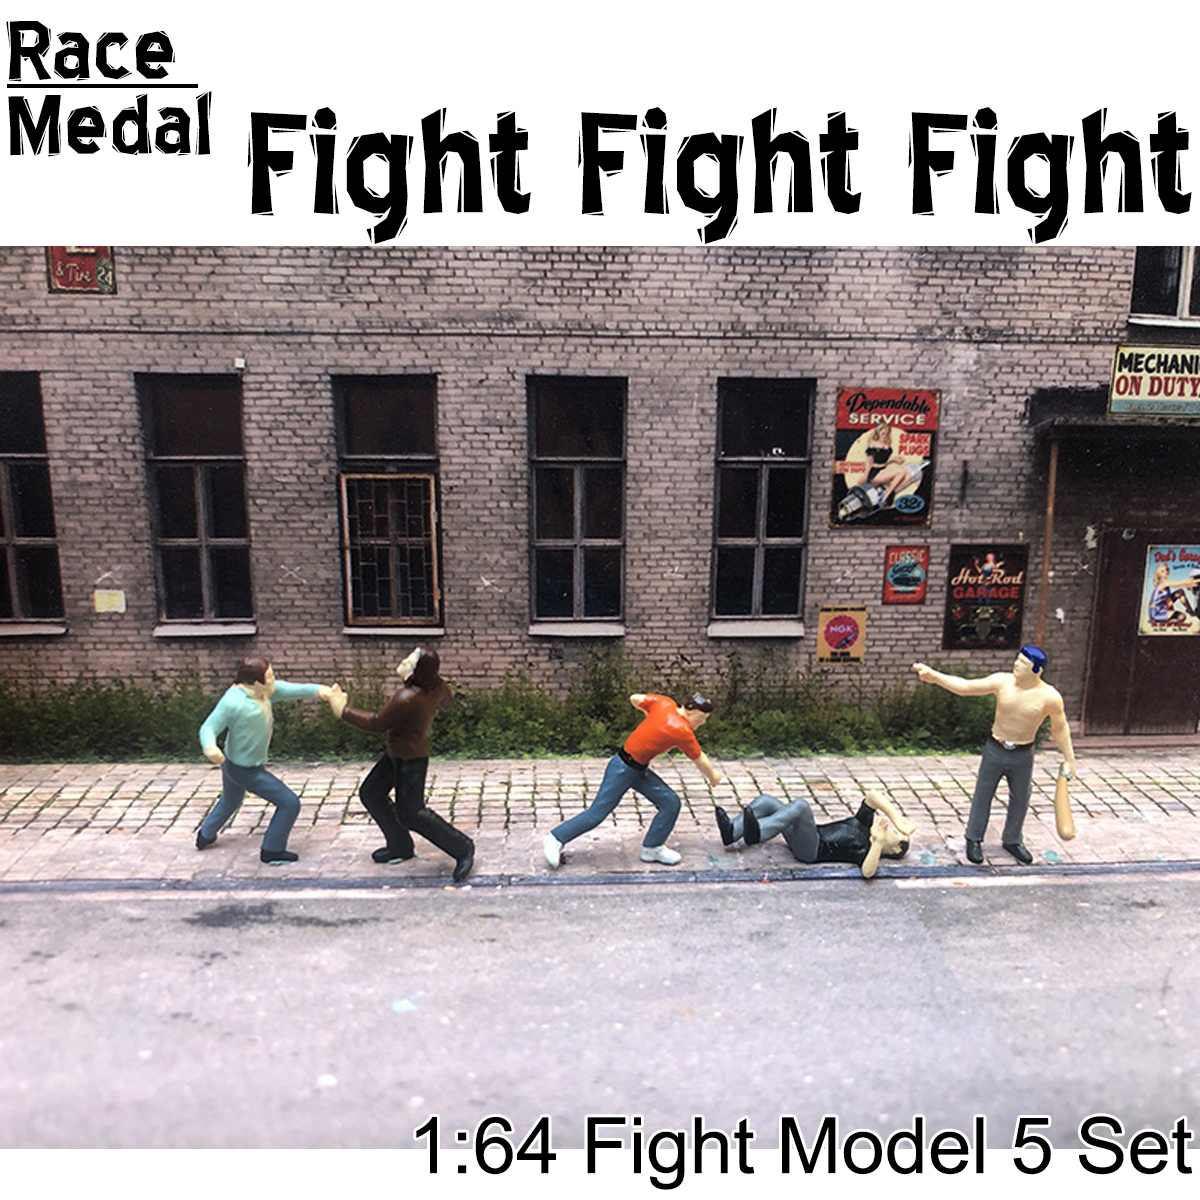 6Pcs/set Scale Outdoor Attack Group Fights Man Tactical Baseball Figure People Scenario Model Scene For Race Medal Matchbox